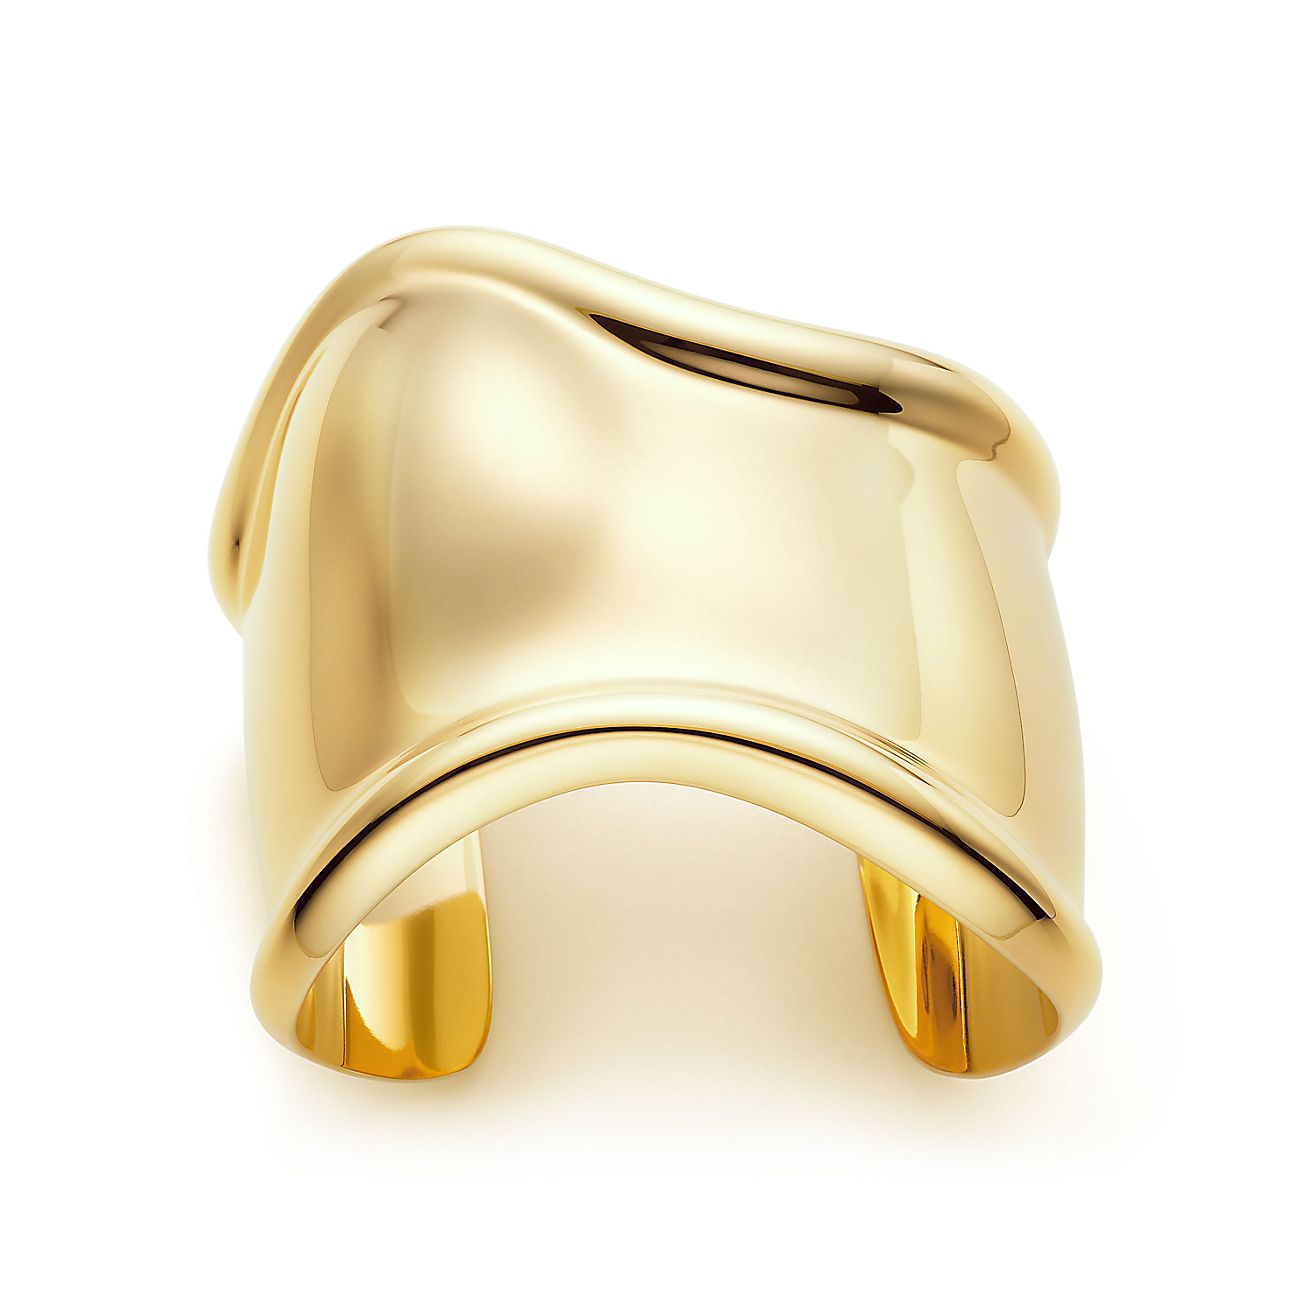 Elsa PerettiR Bone Cuff In 18k Gold Medium